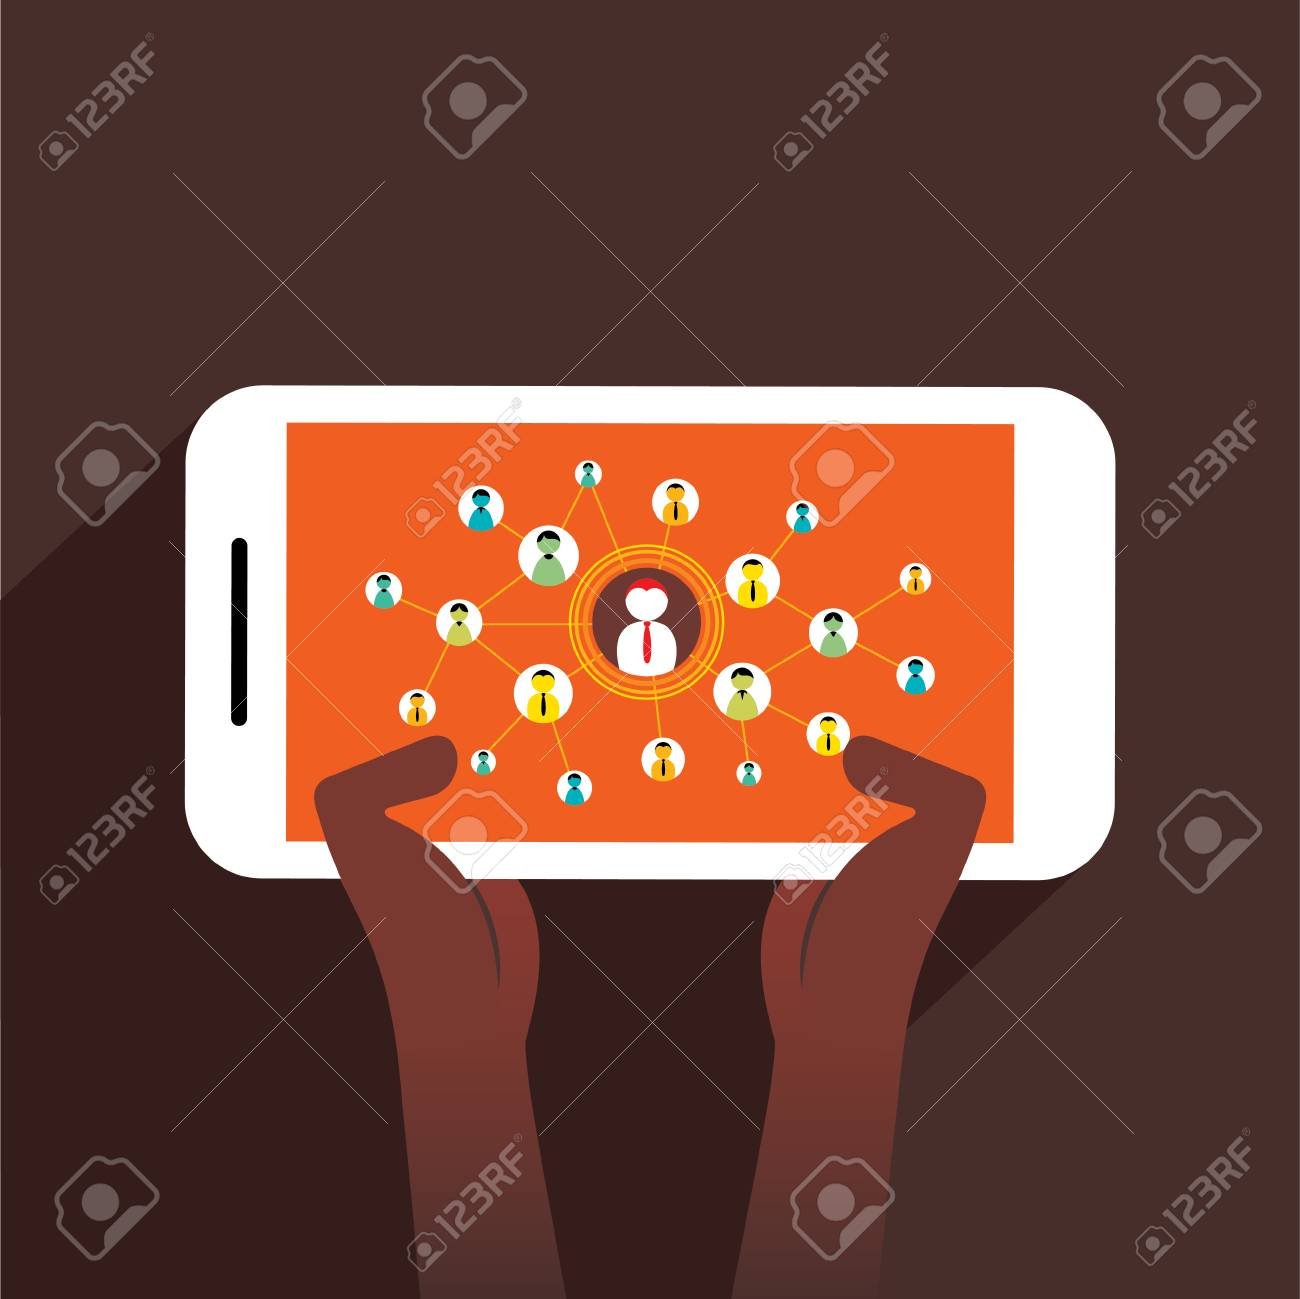 Business content sharing on mobile concept, mobile social network